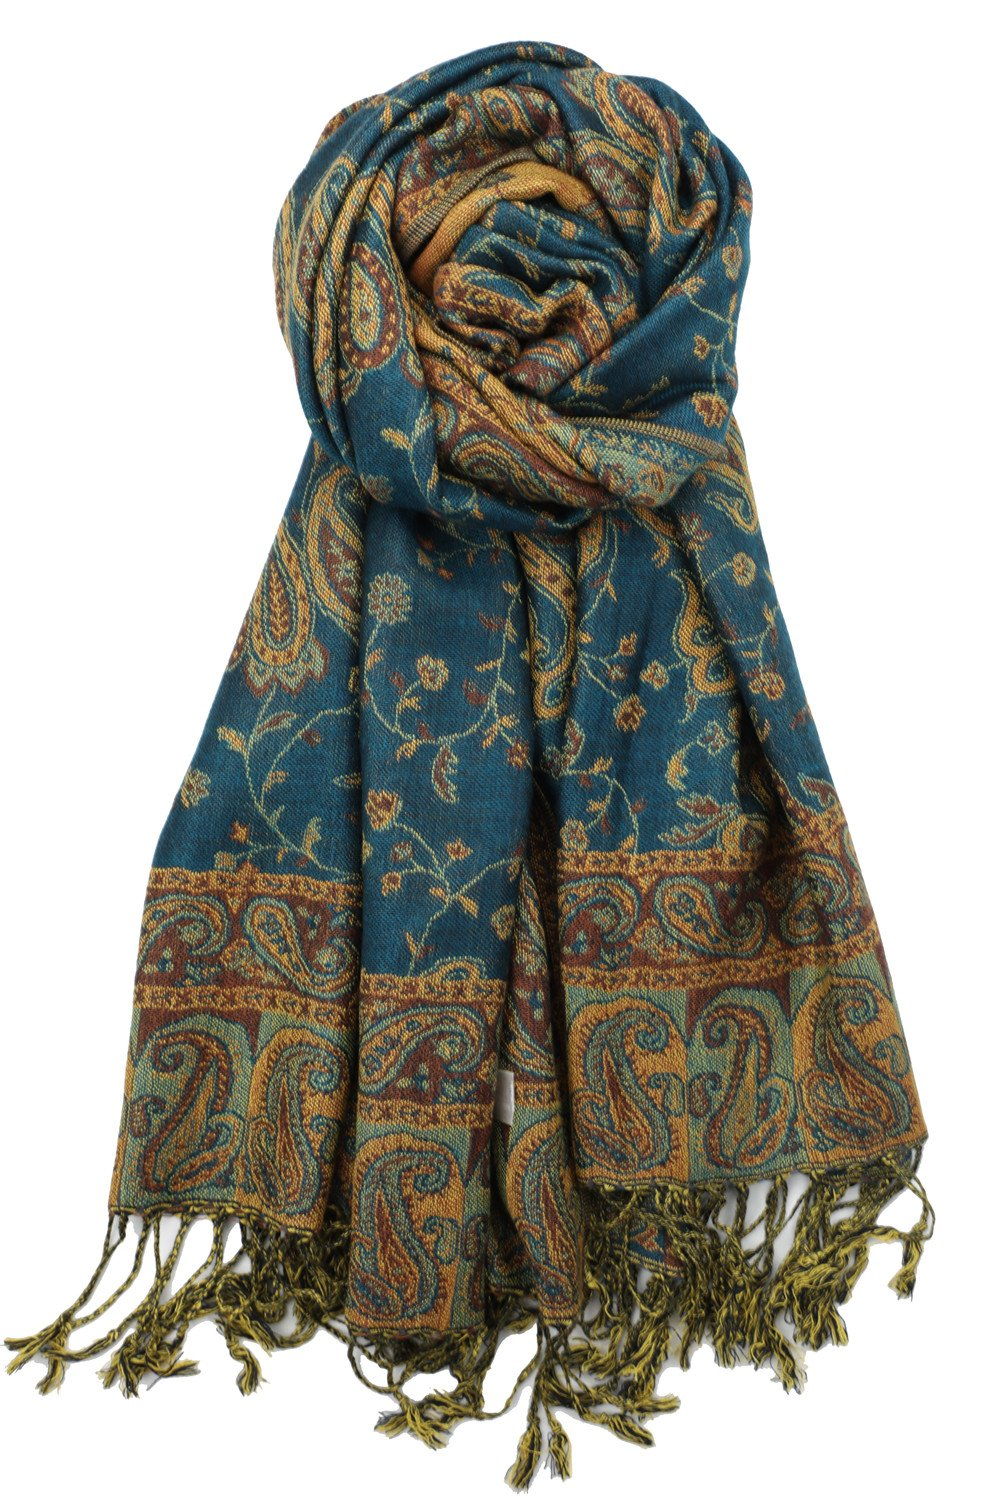 Achillea Soft Silky Reversible Paisley Pashmina Shawl Wrap Scarf w/Fringes (Dark Seagreen)